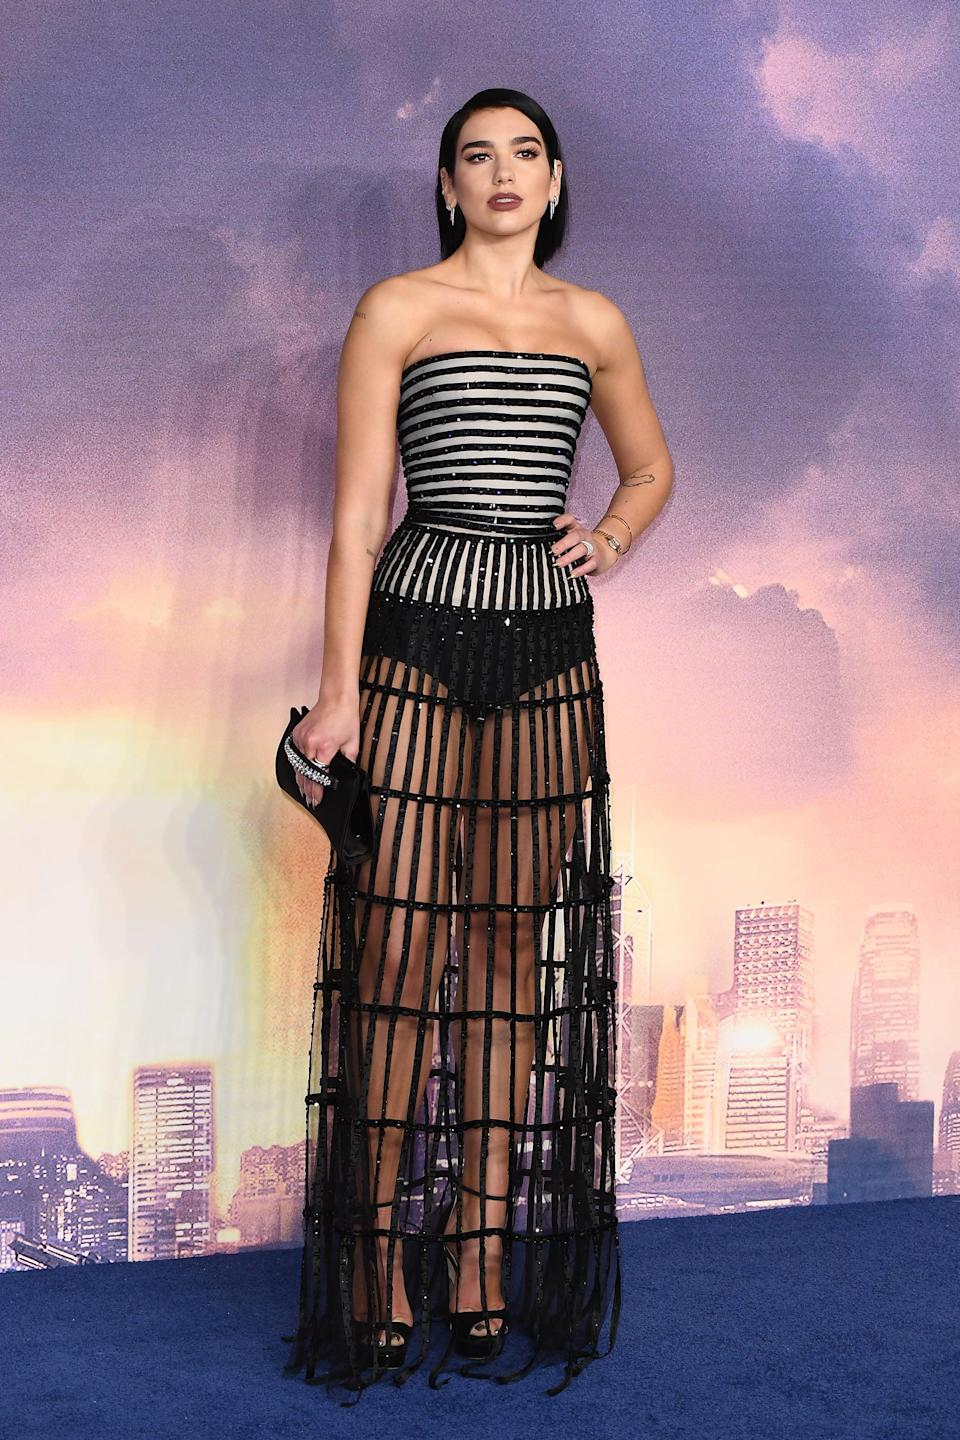 <p>Wearing a black sheer net dress by Armani Privé at the premiere of <strong>Alita: Battle Angel</strong>.</p>